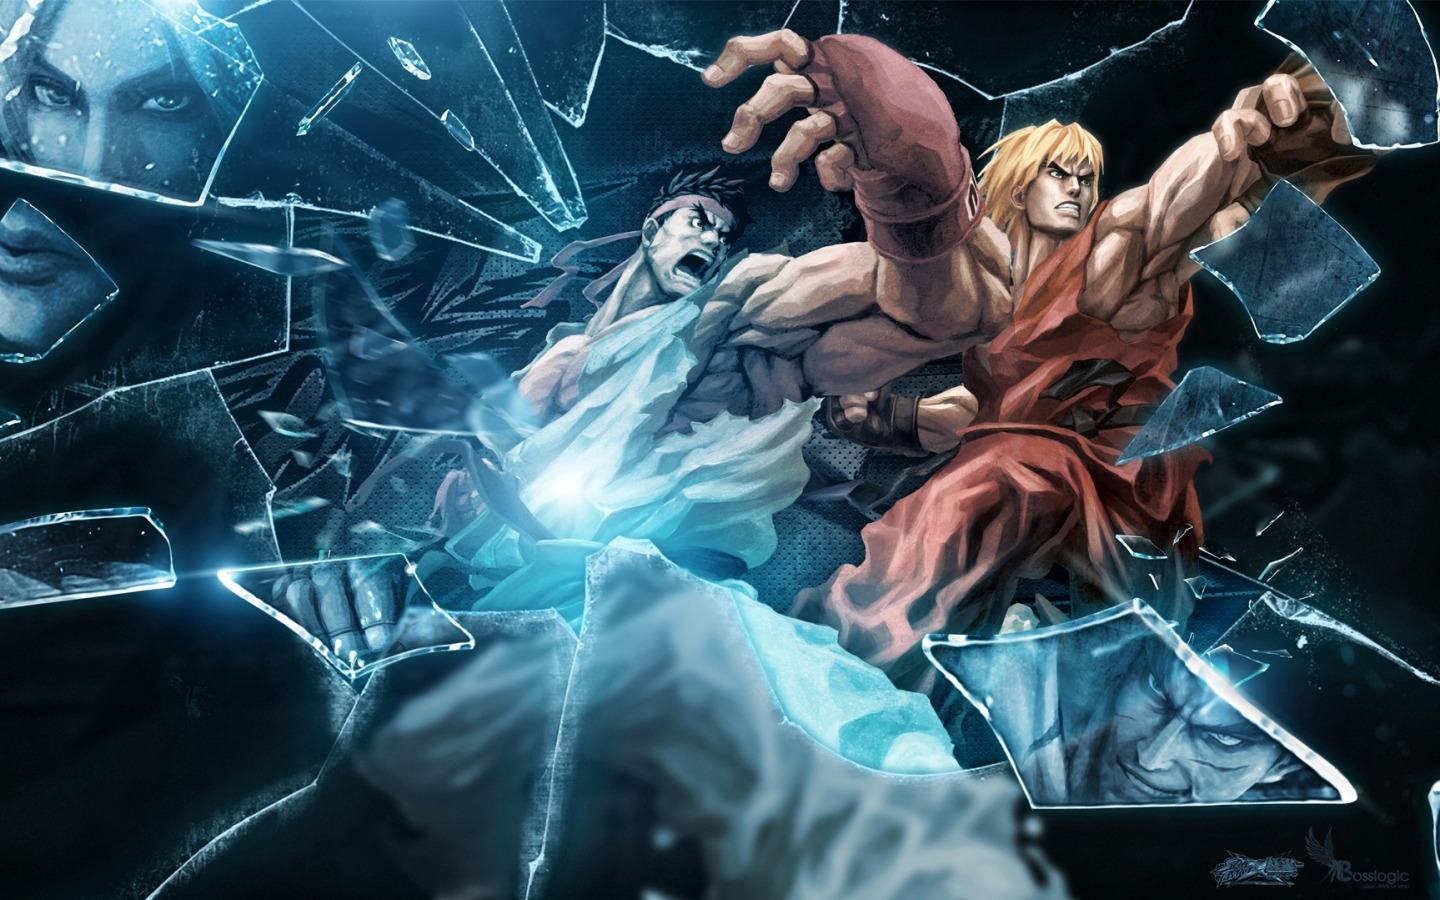 Street Fighter HD & Widescreen Wallpaper 0.556408445537921